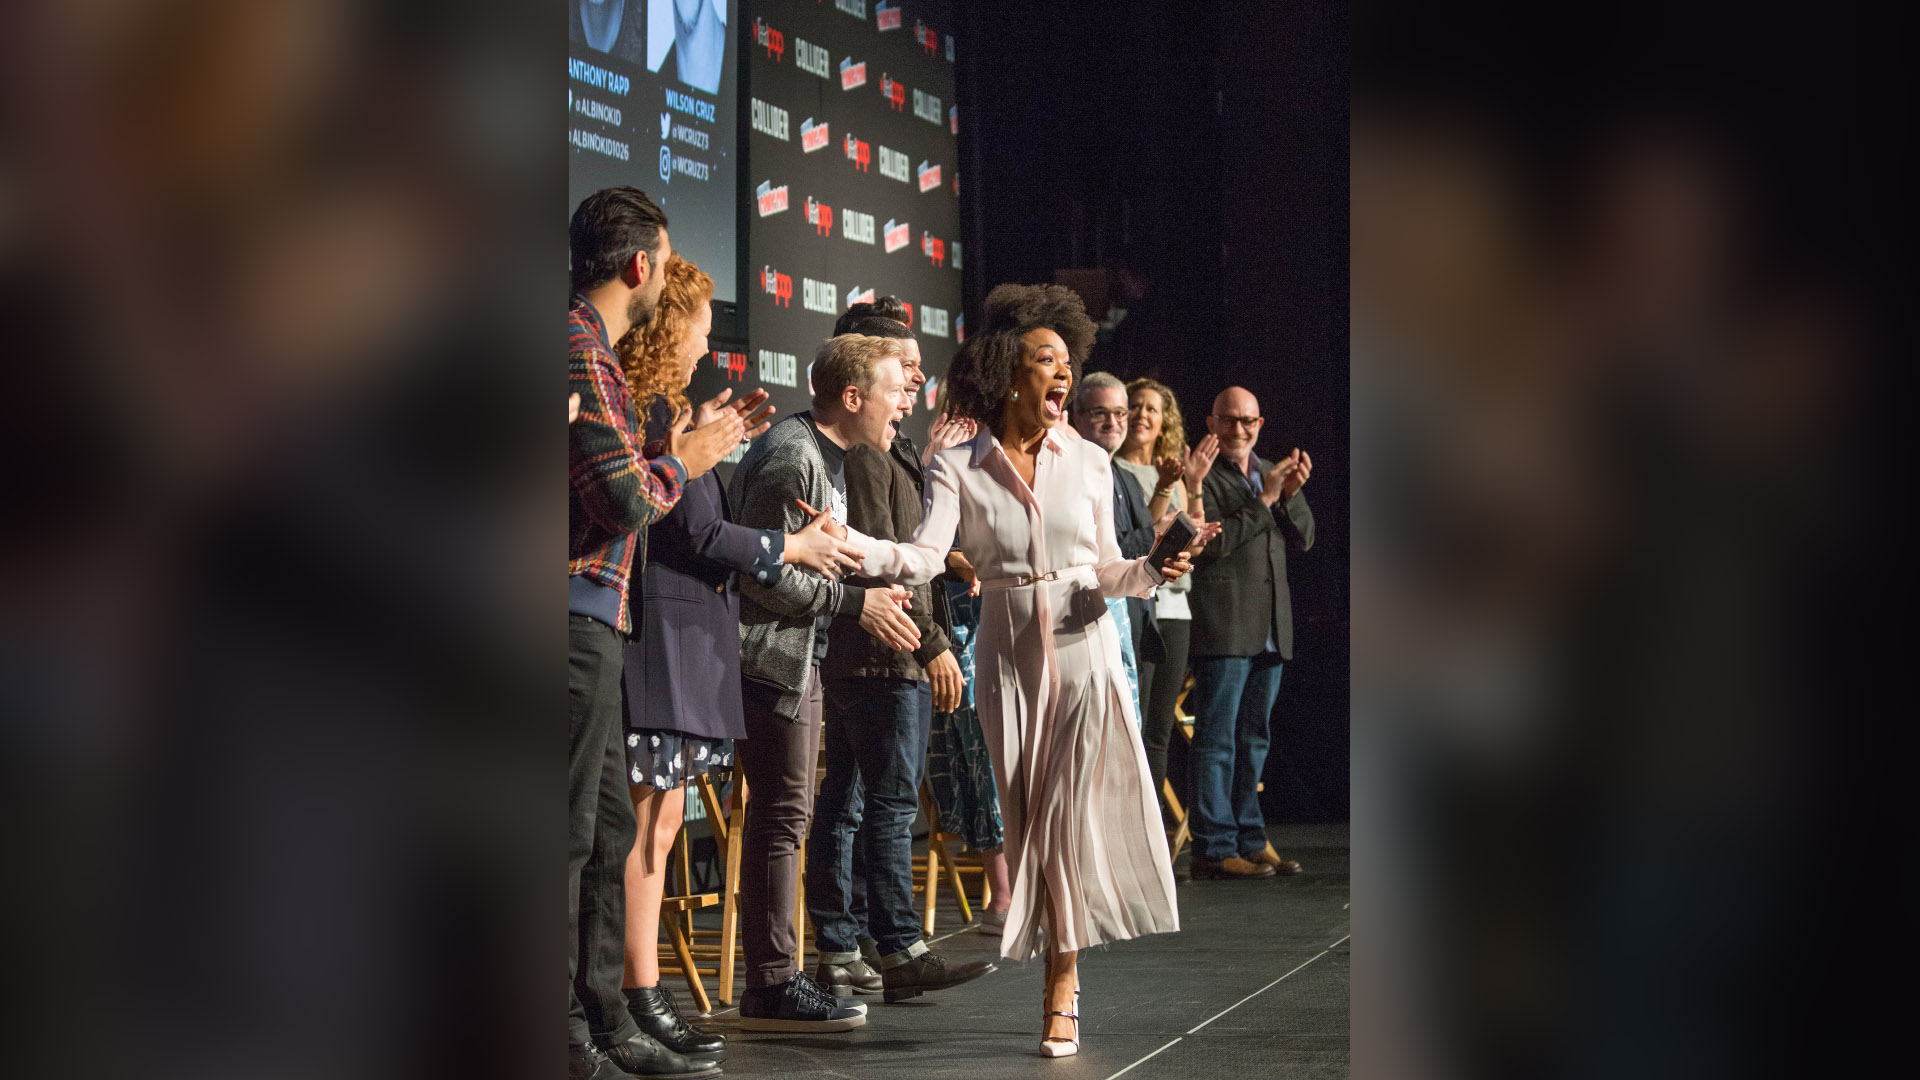 Sonequa Martin-Green with the cast and crew